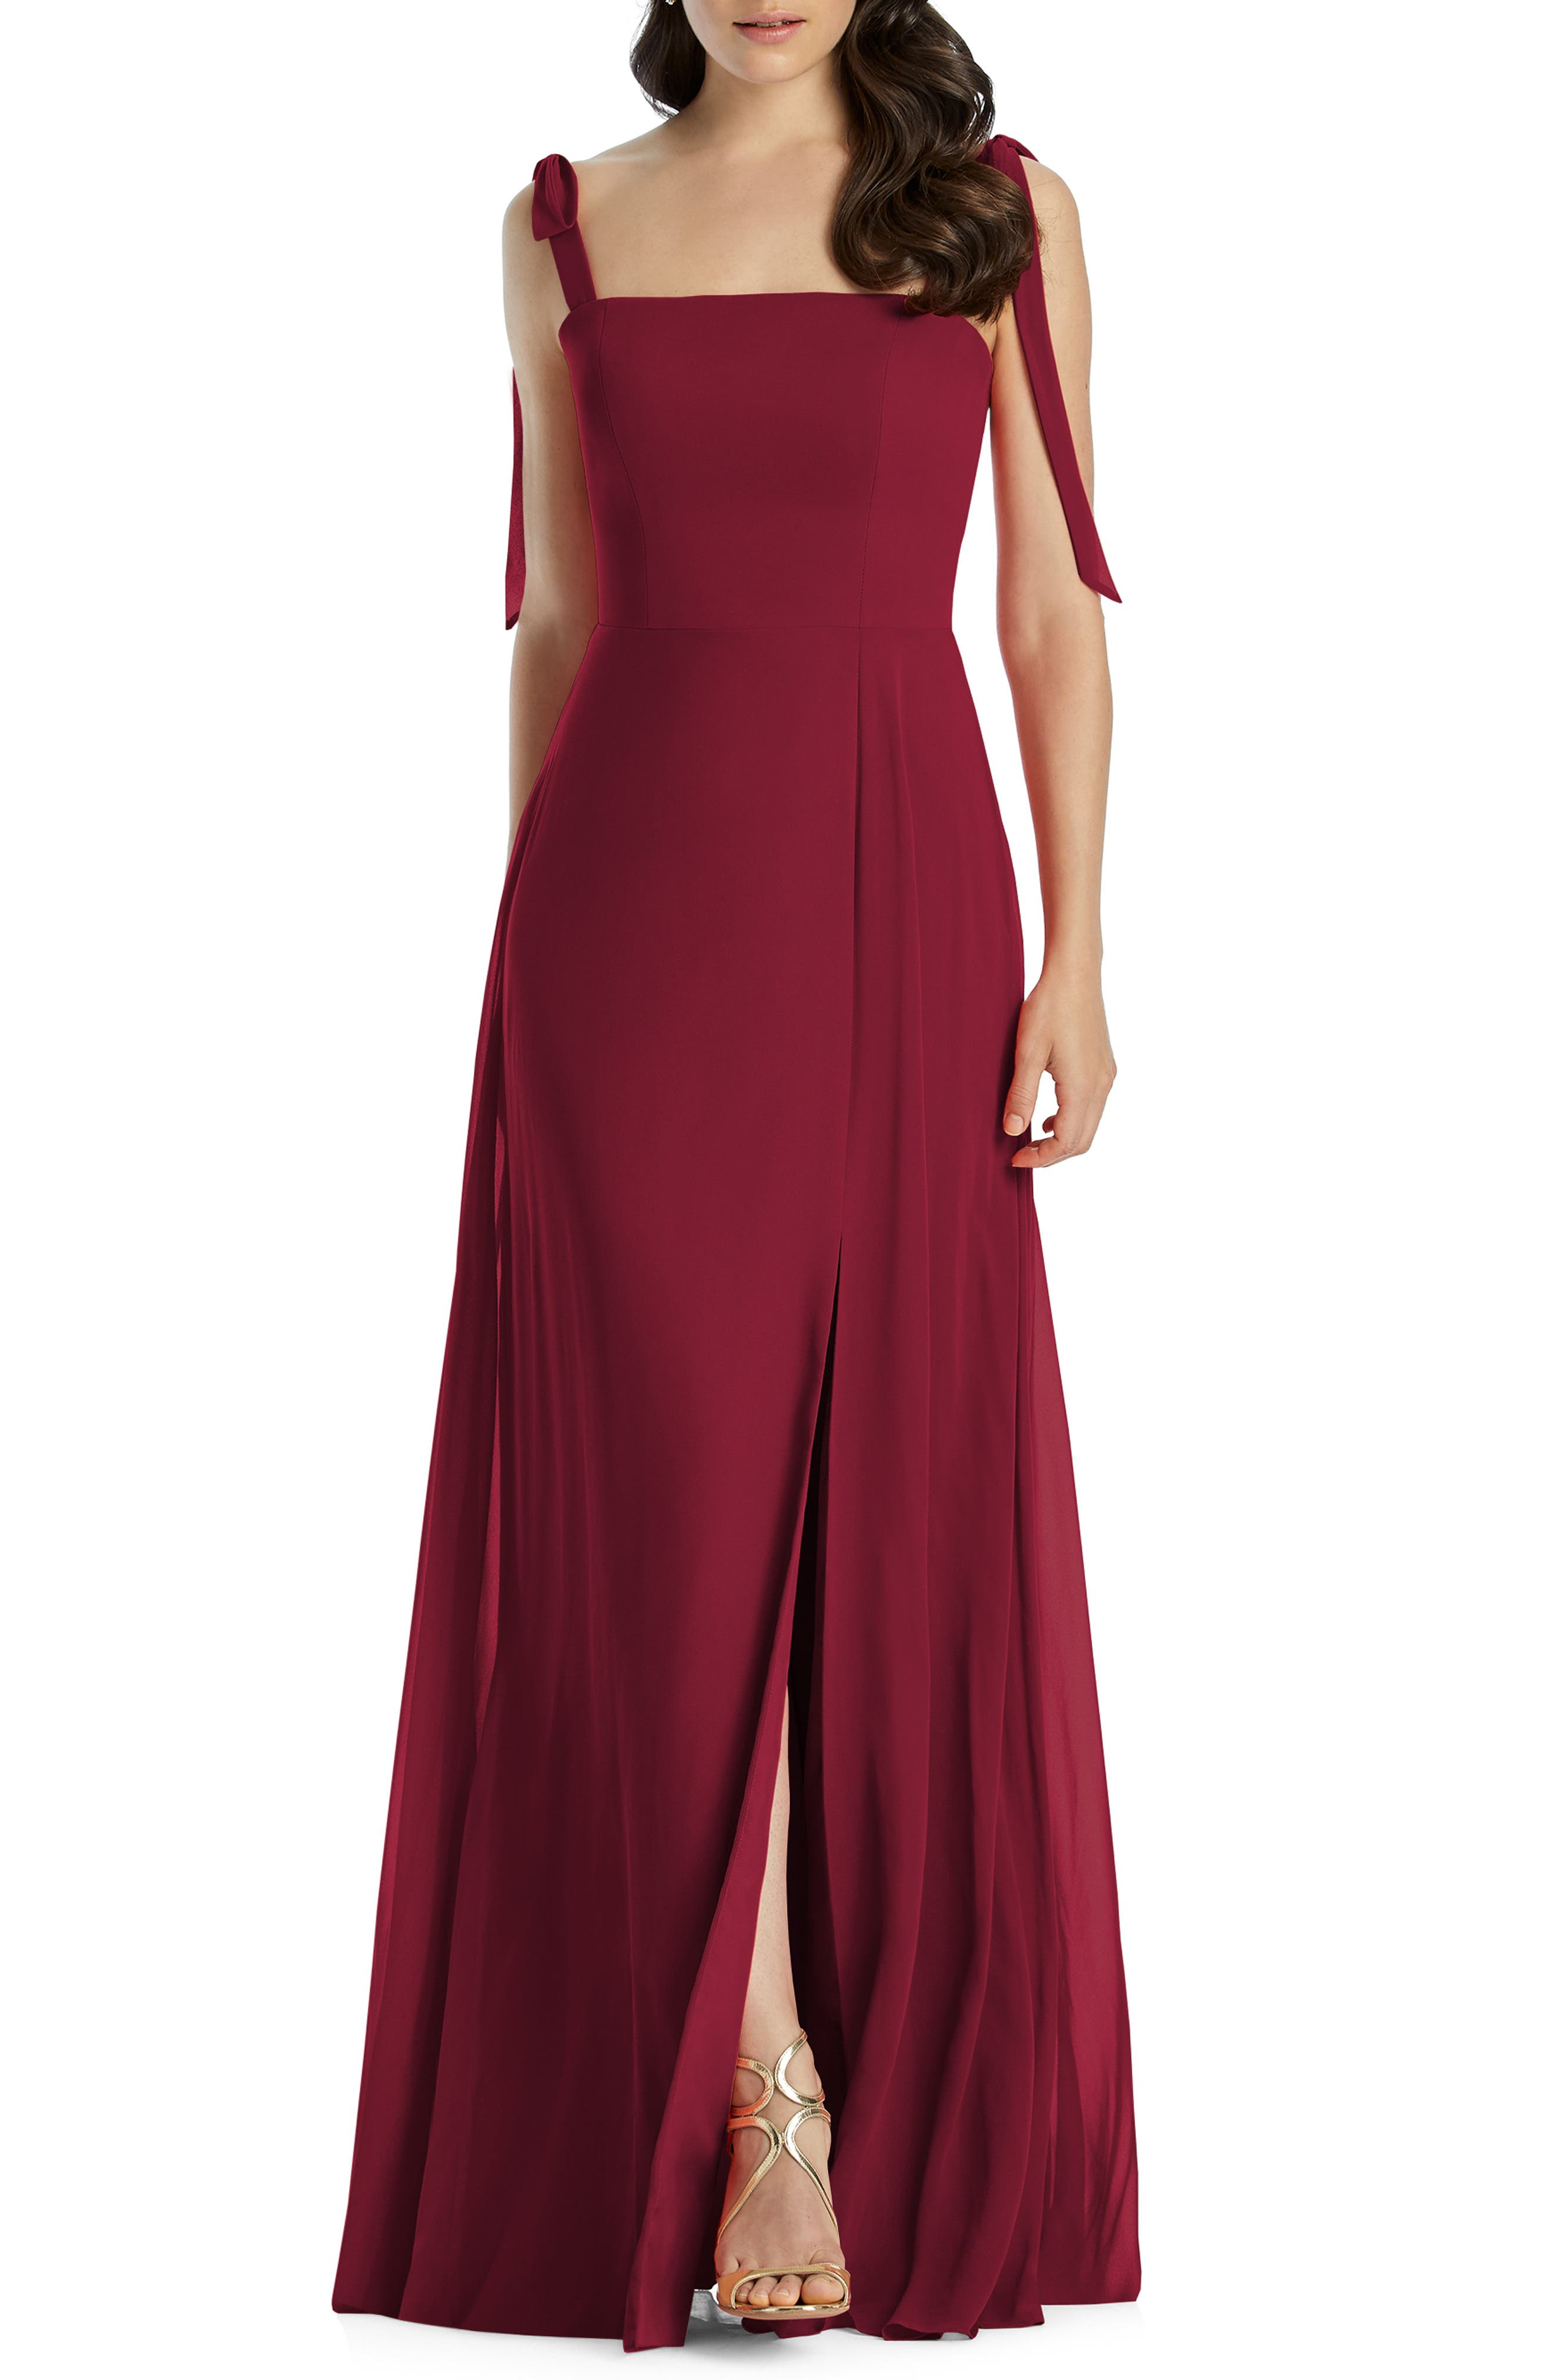 Drapey ties at the shoulders and a flowing chiffon skirt softly balance the square-cut bodice on this classic gown, with a front slit adding a touch of allure. Style Name: Dessy Collection Shoulder Tie Chiffon A-Line Gown. Style Number: 5793219 1. Available in stores.